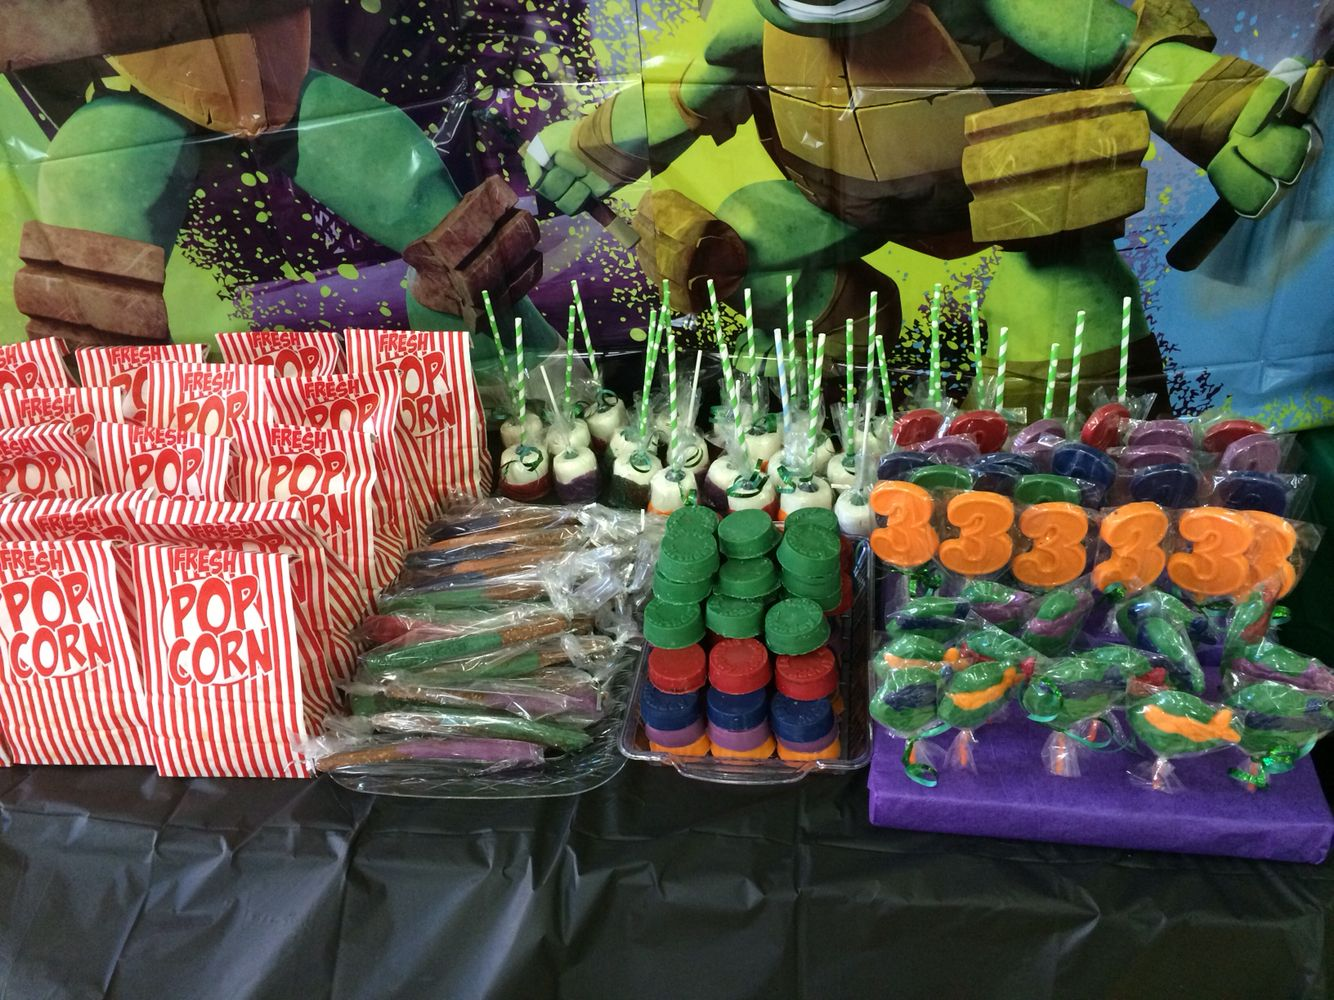 Ninja Turtle Candy Table Turtles Candy Candy Table Table Decorations